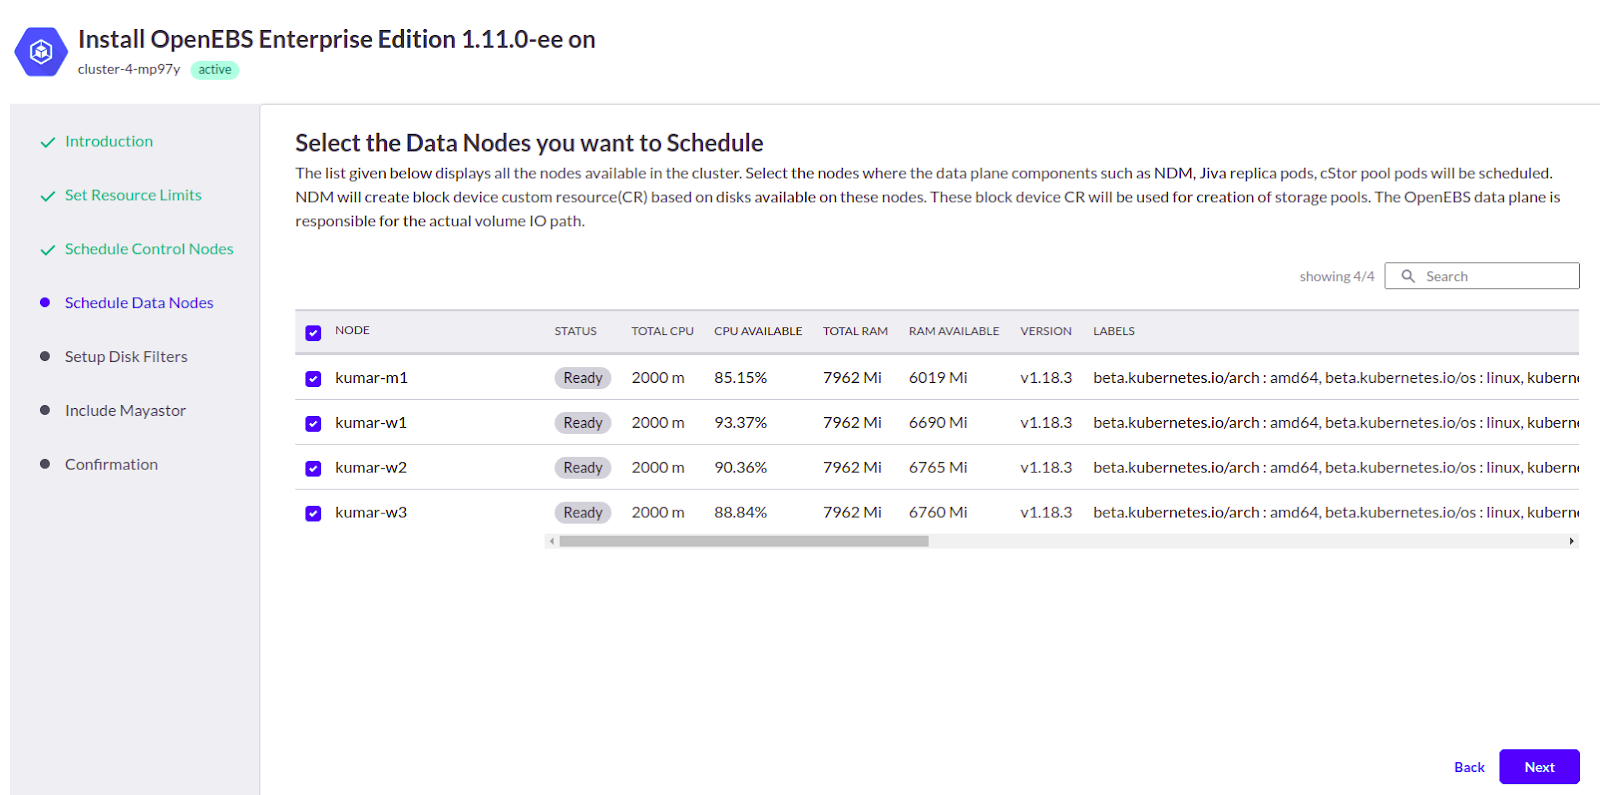 select the Data Nodes you want to schedule